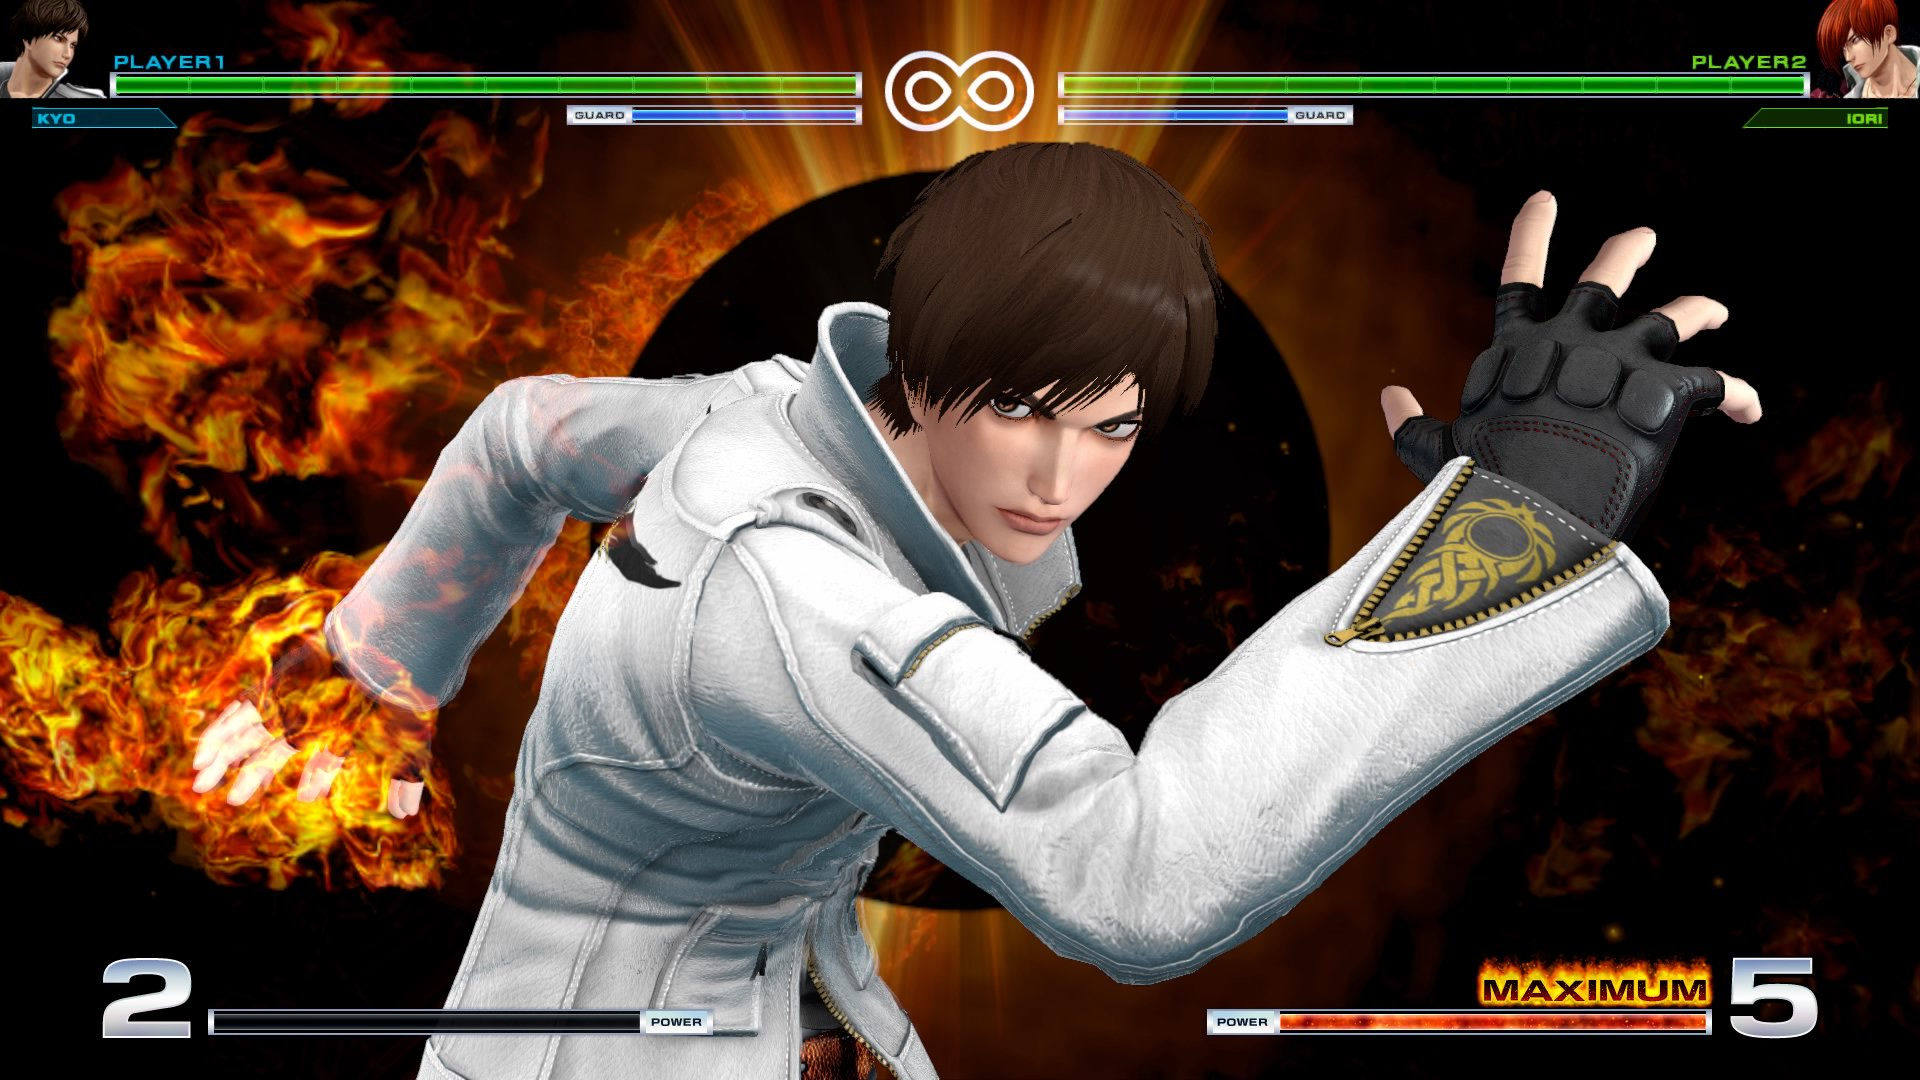 king-of-fighter-annuncio-patch-grafica-gamesoul